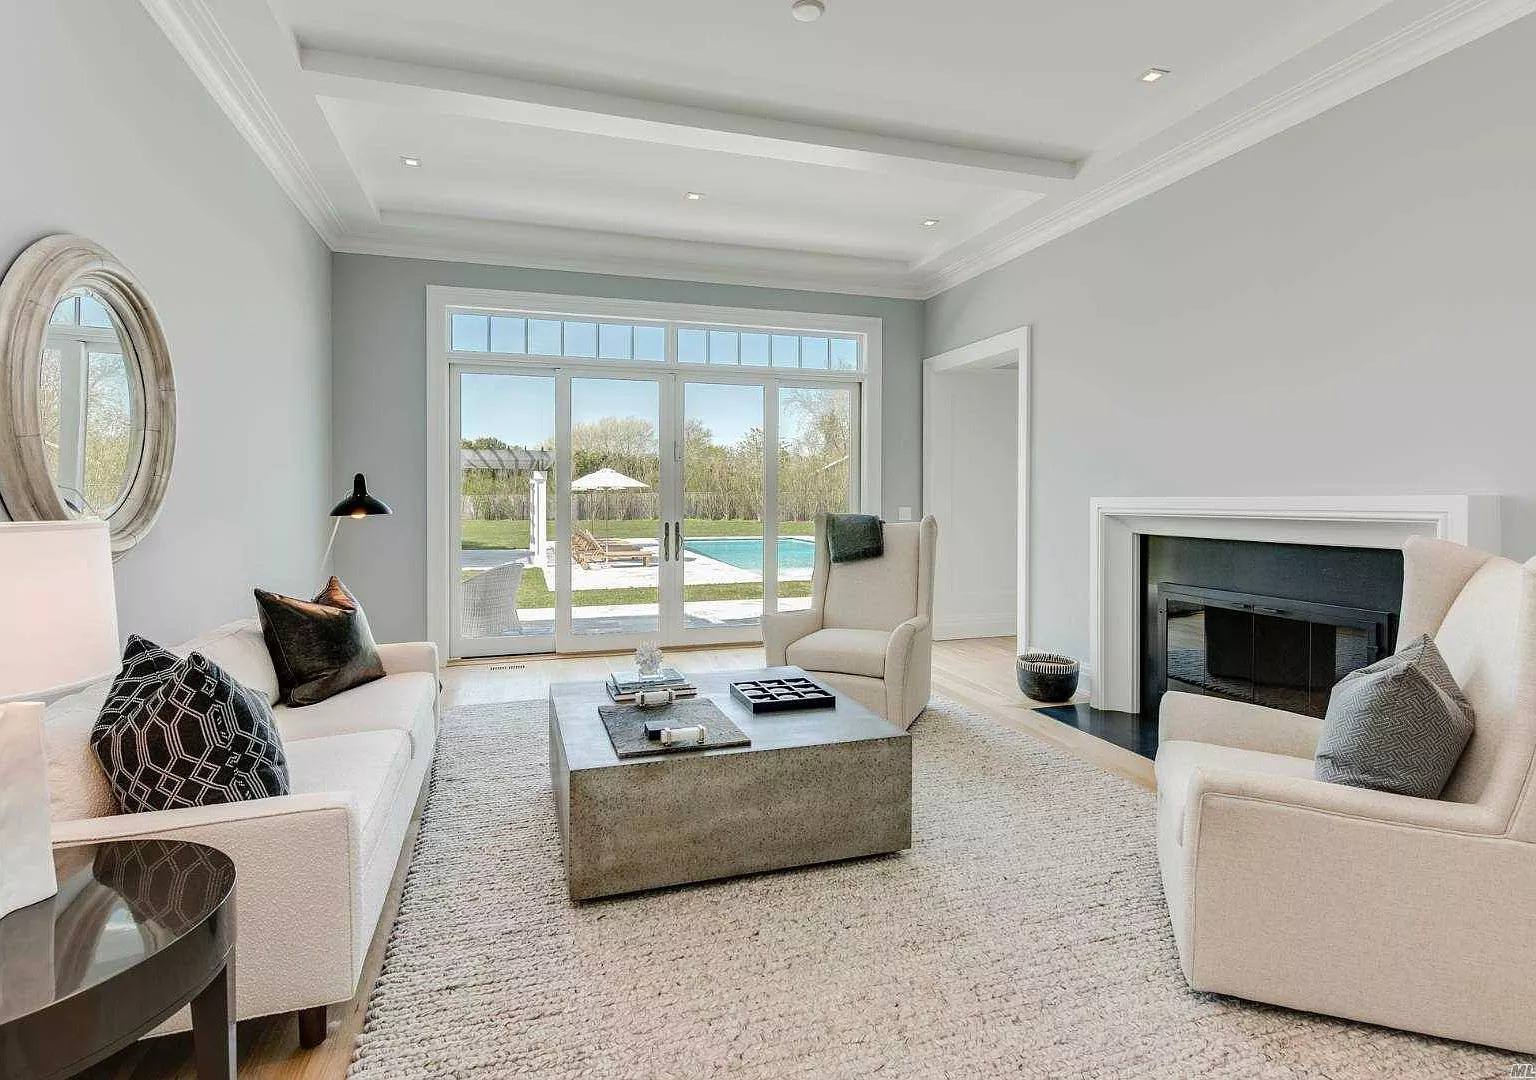 64 Jennifer Ln, Bridgehampton, NY 11932 - $9,450,000 home for sale, house images, photos and pics gallery